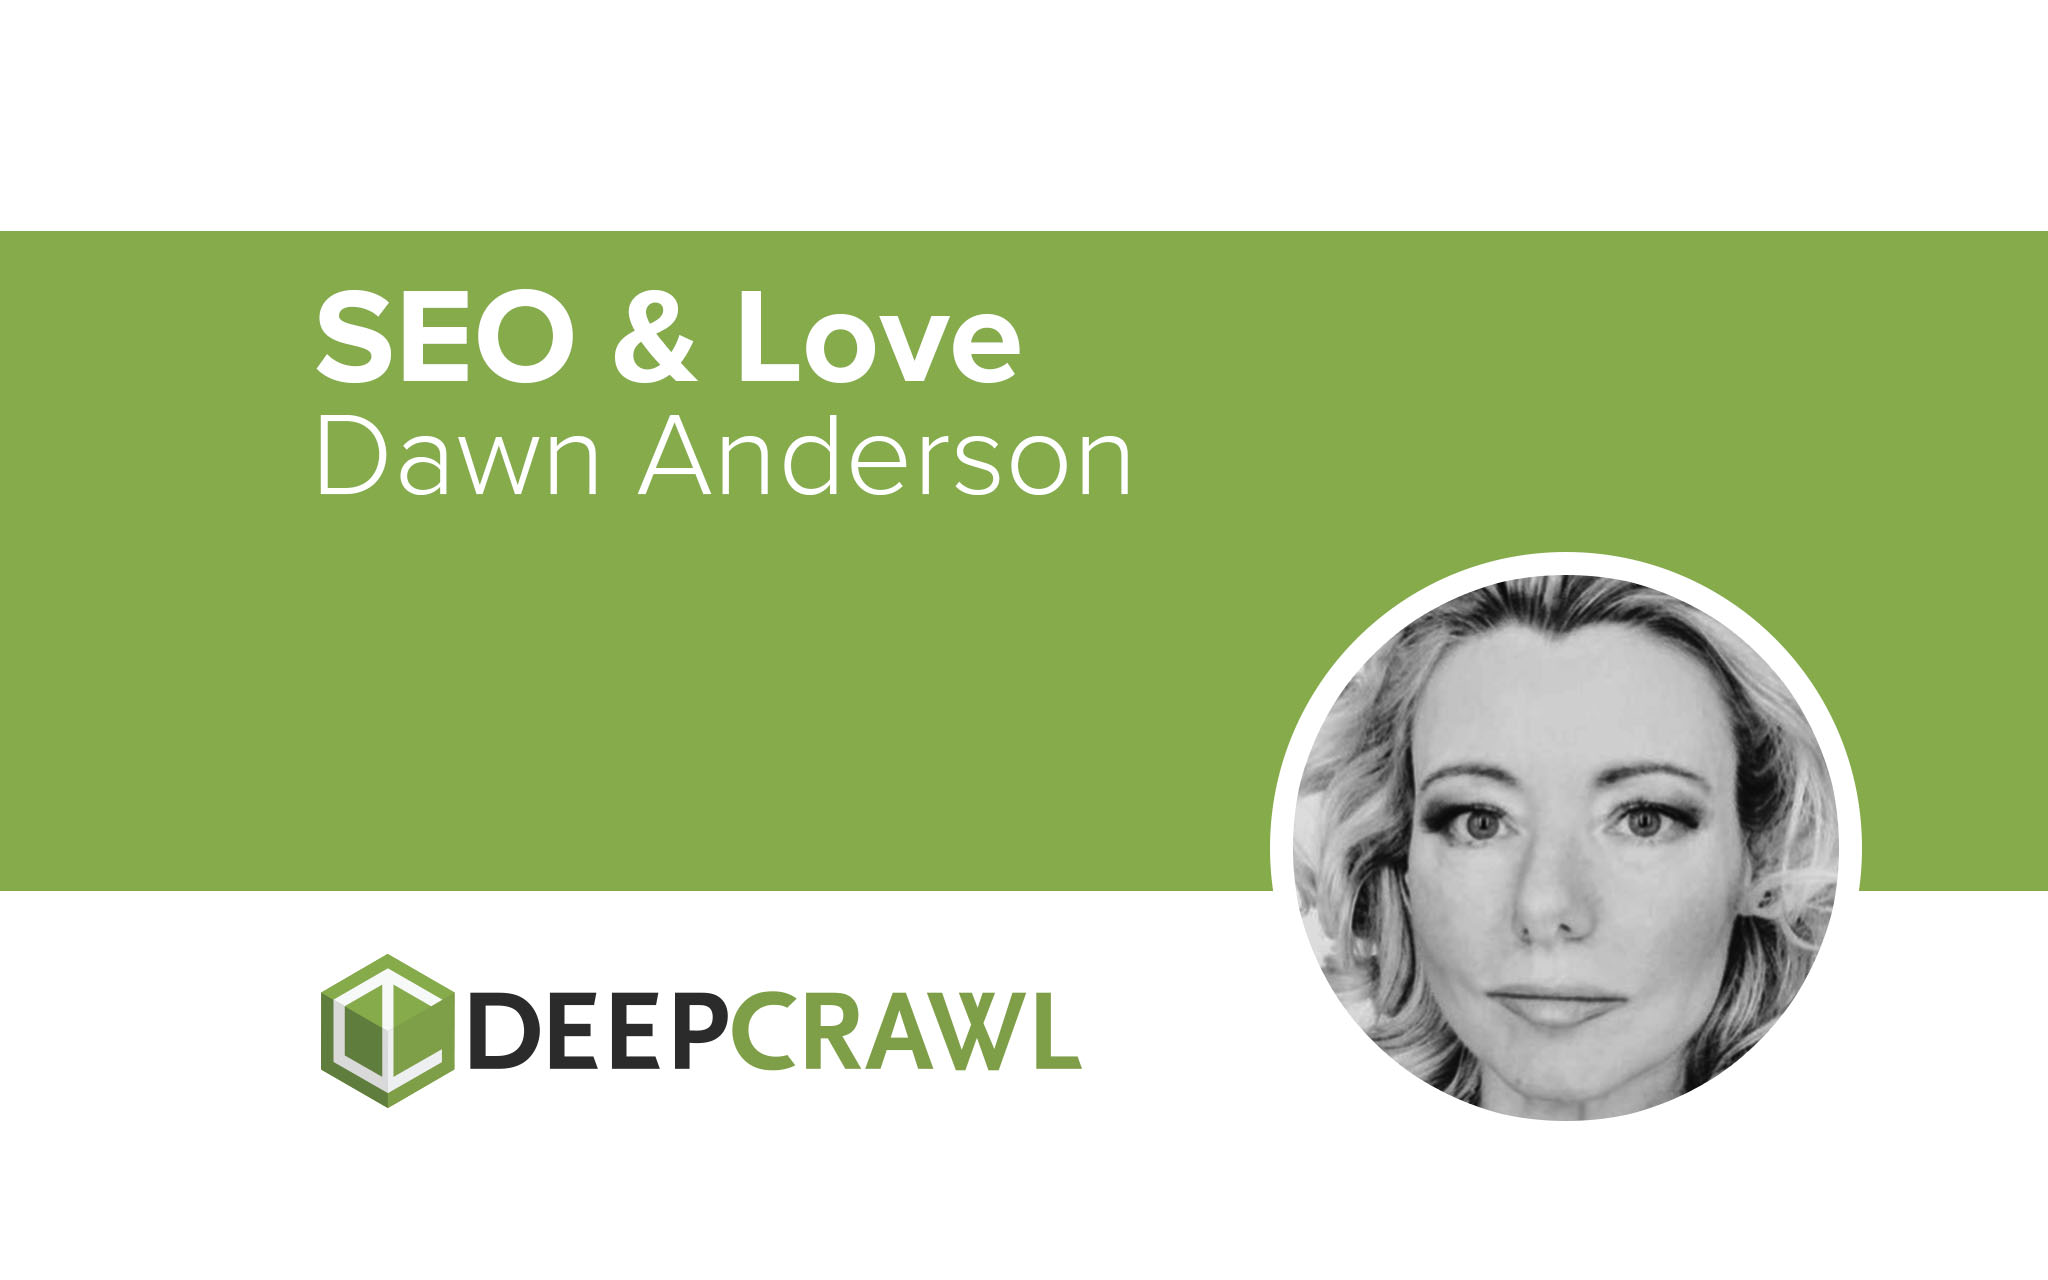 SEO & Love 'twitter-view' with Dawn Anderson Director of Move It Marketing - DeepCrawl